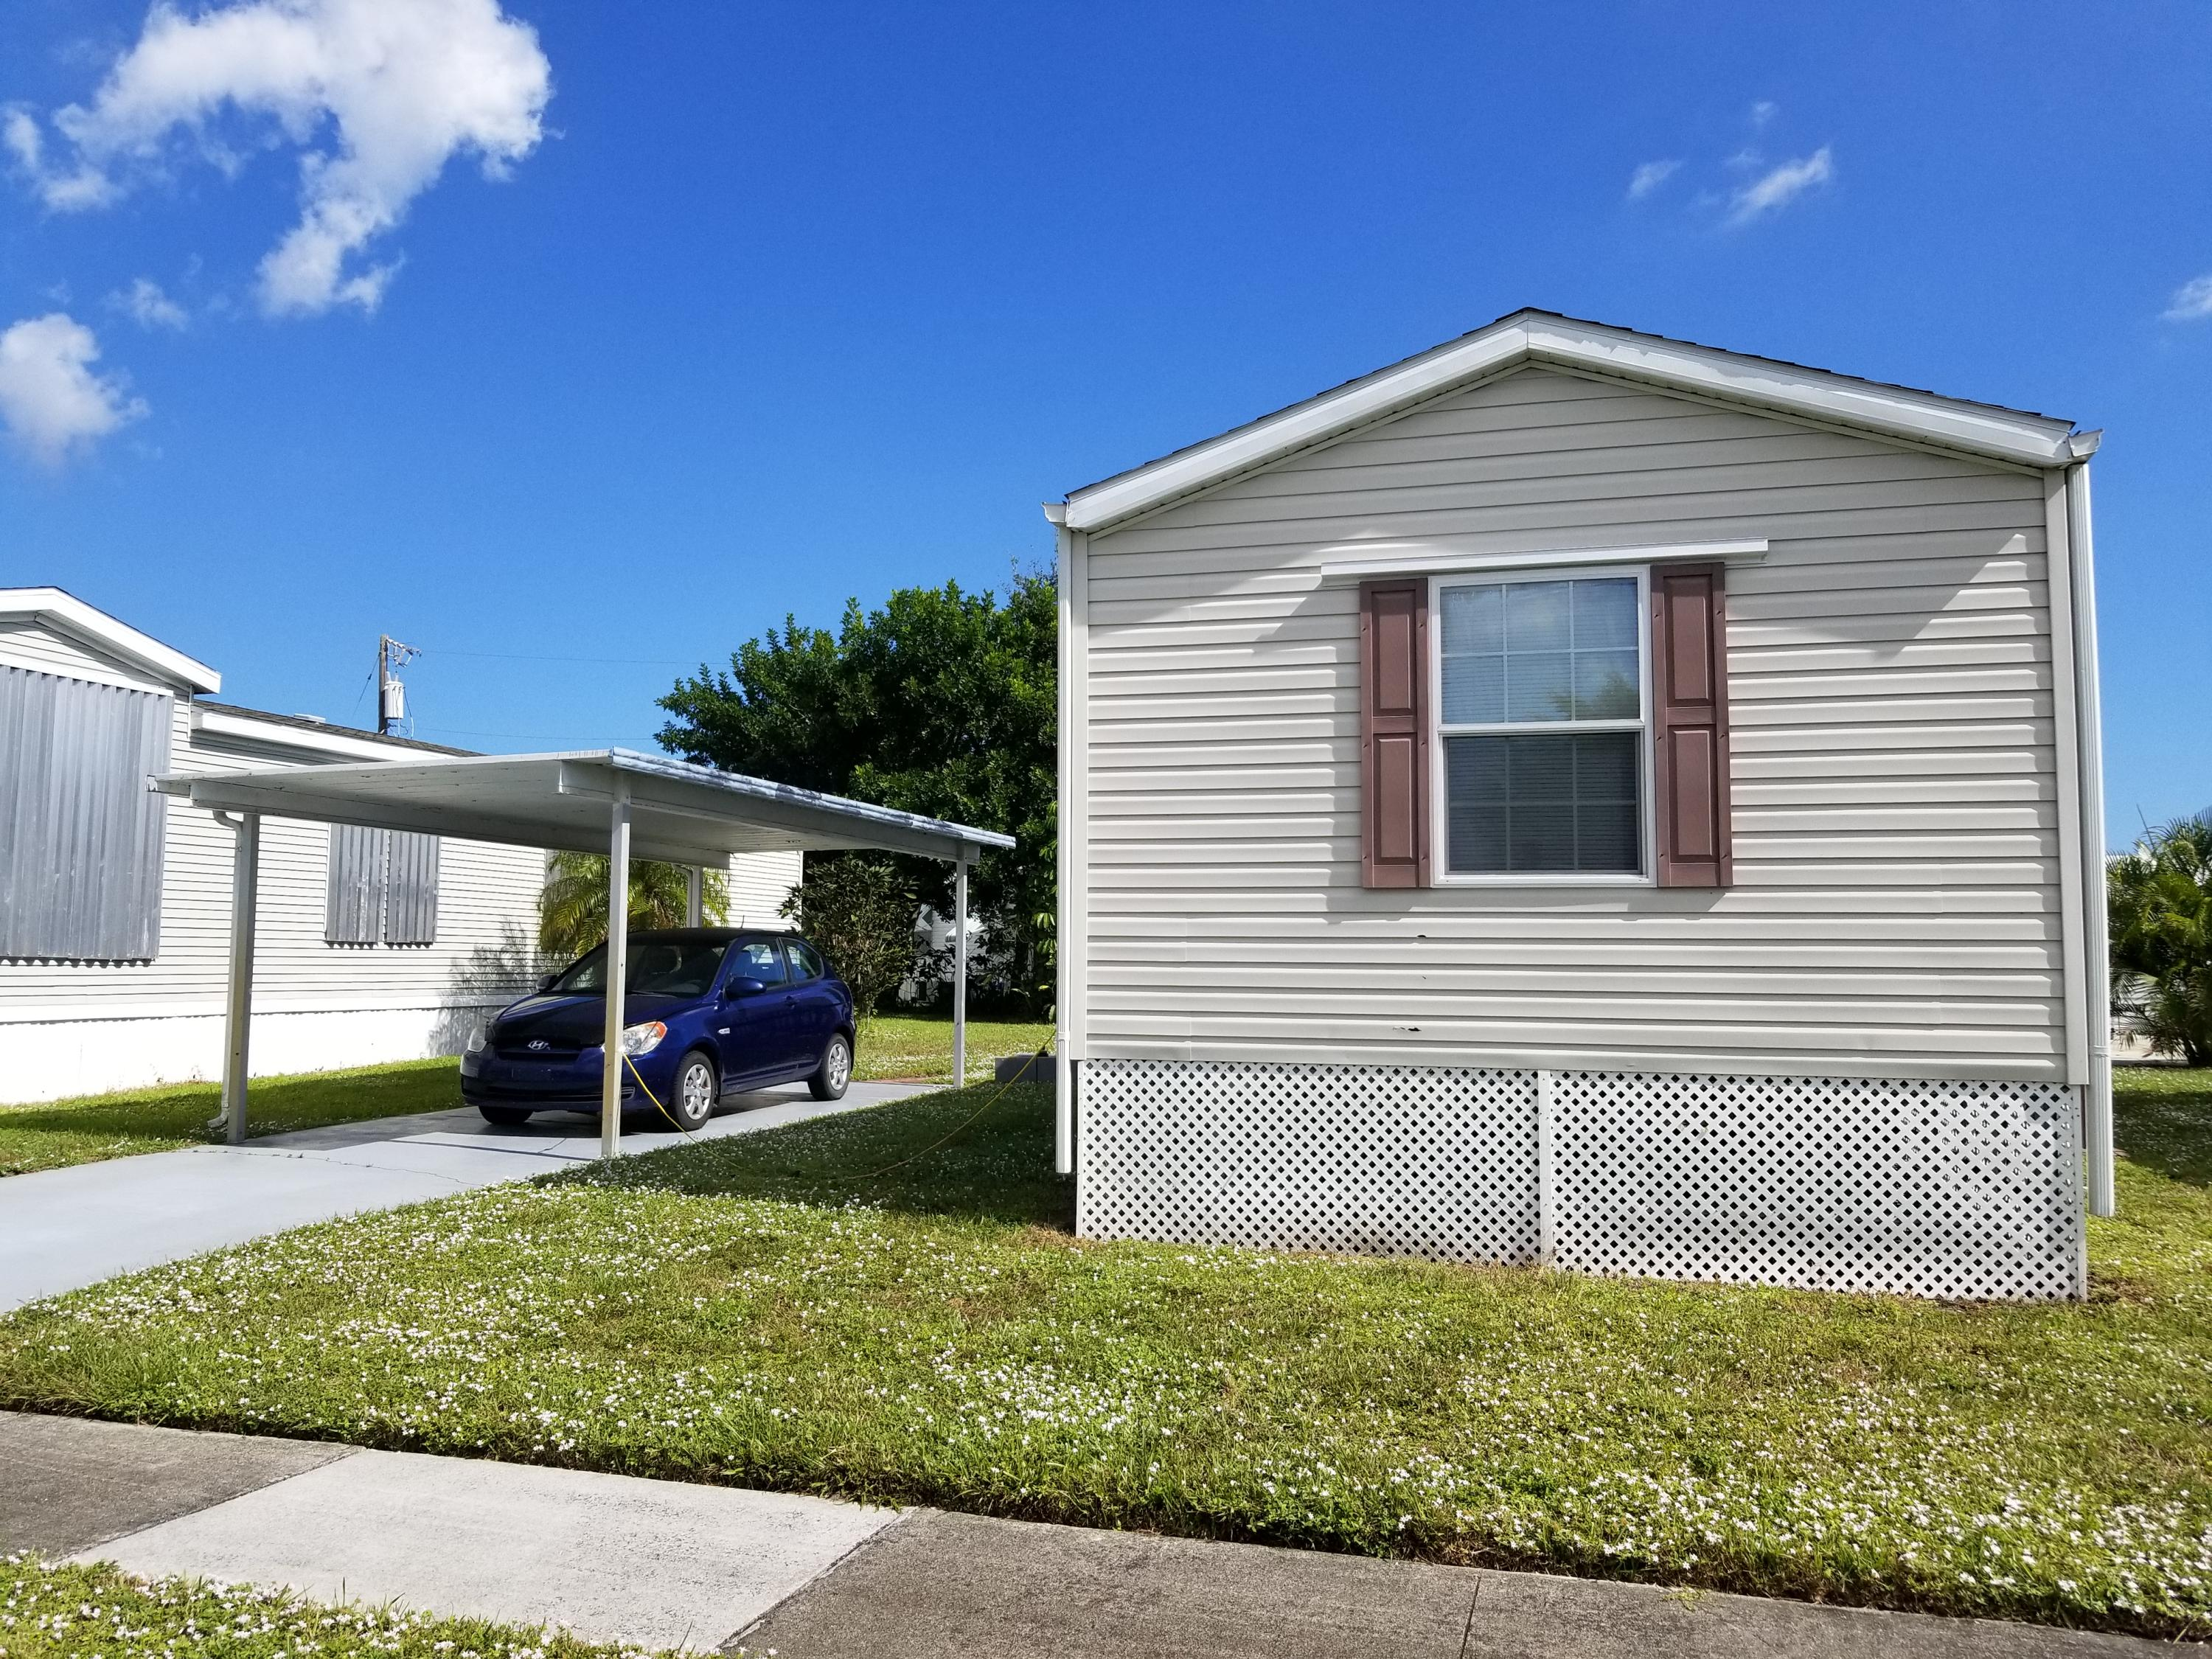 Northern Pines Mobile Home Park, Boynton Beach, Florida Homes For